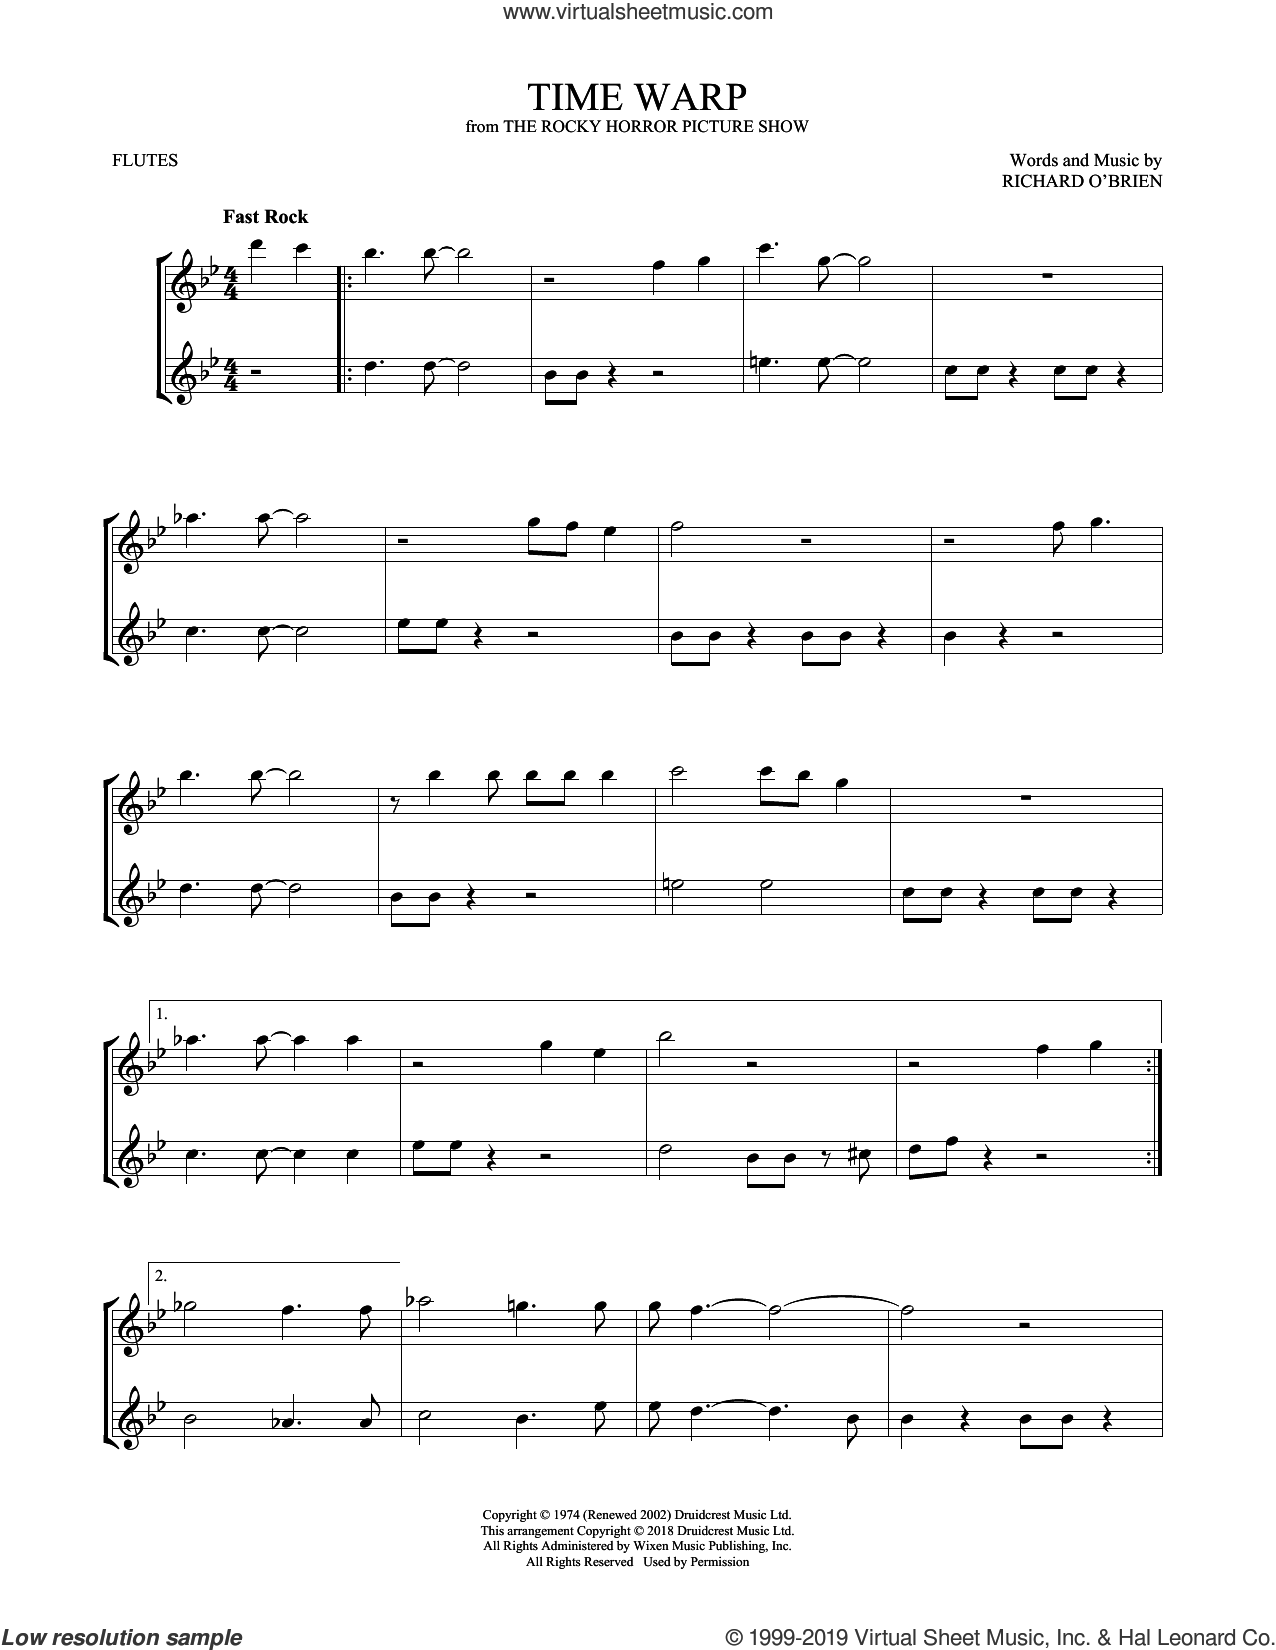 Time Warp sheet music for two flutes (duets) by Richard O'Brien, intermediate skill level